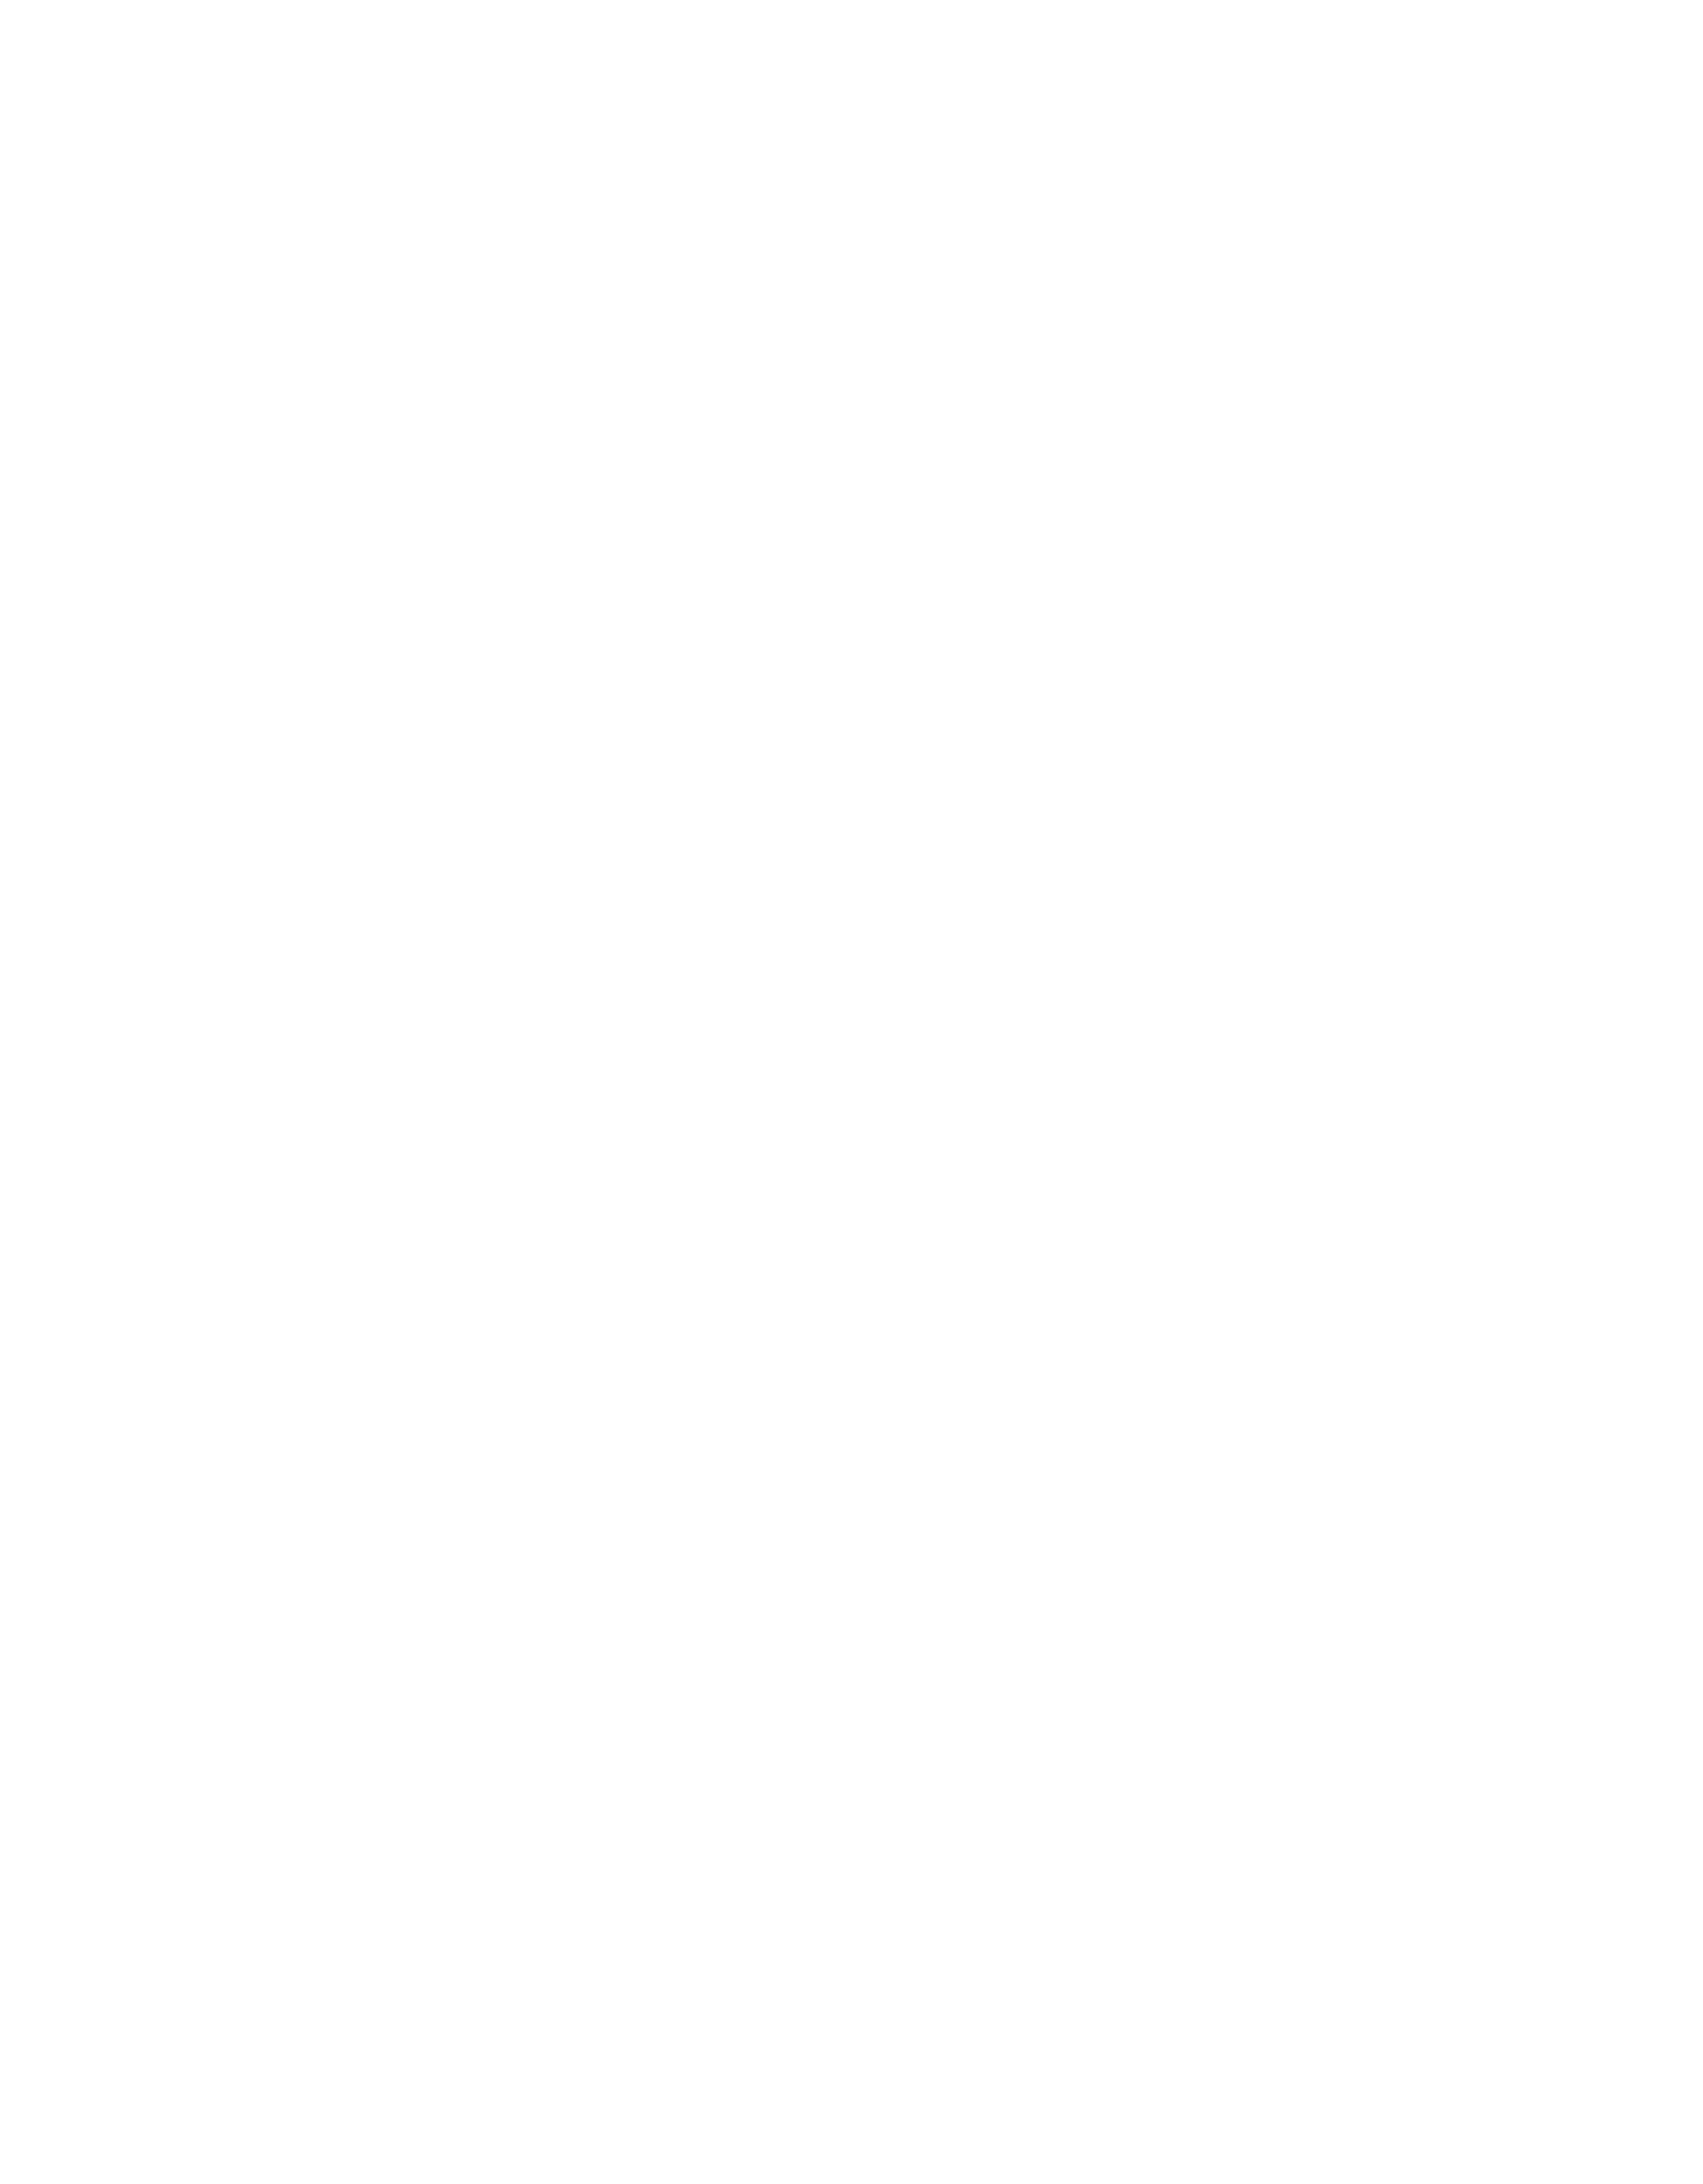 Winter tree silhouette png. Transparent clip art image